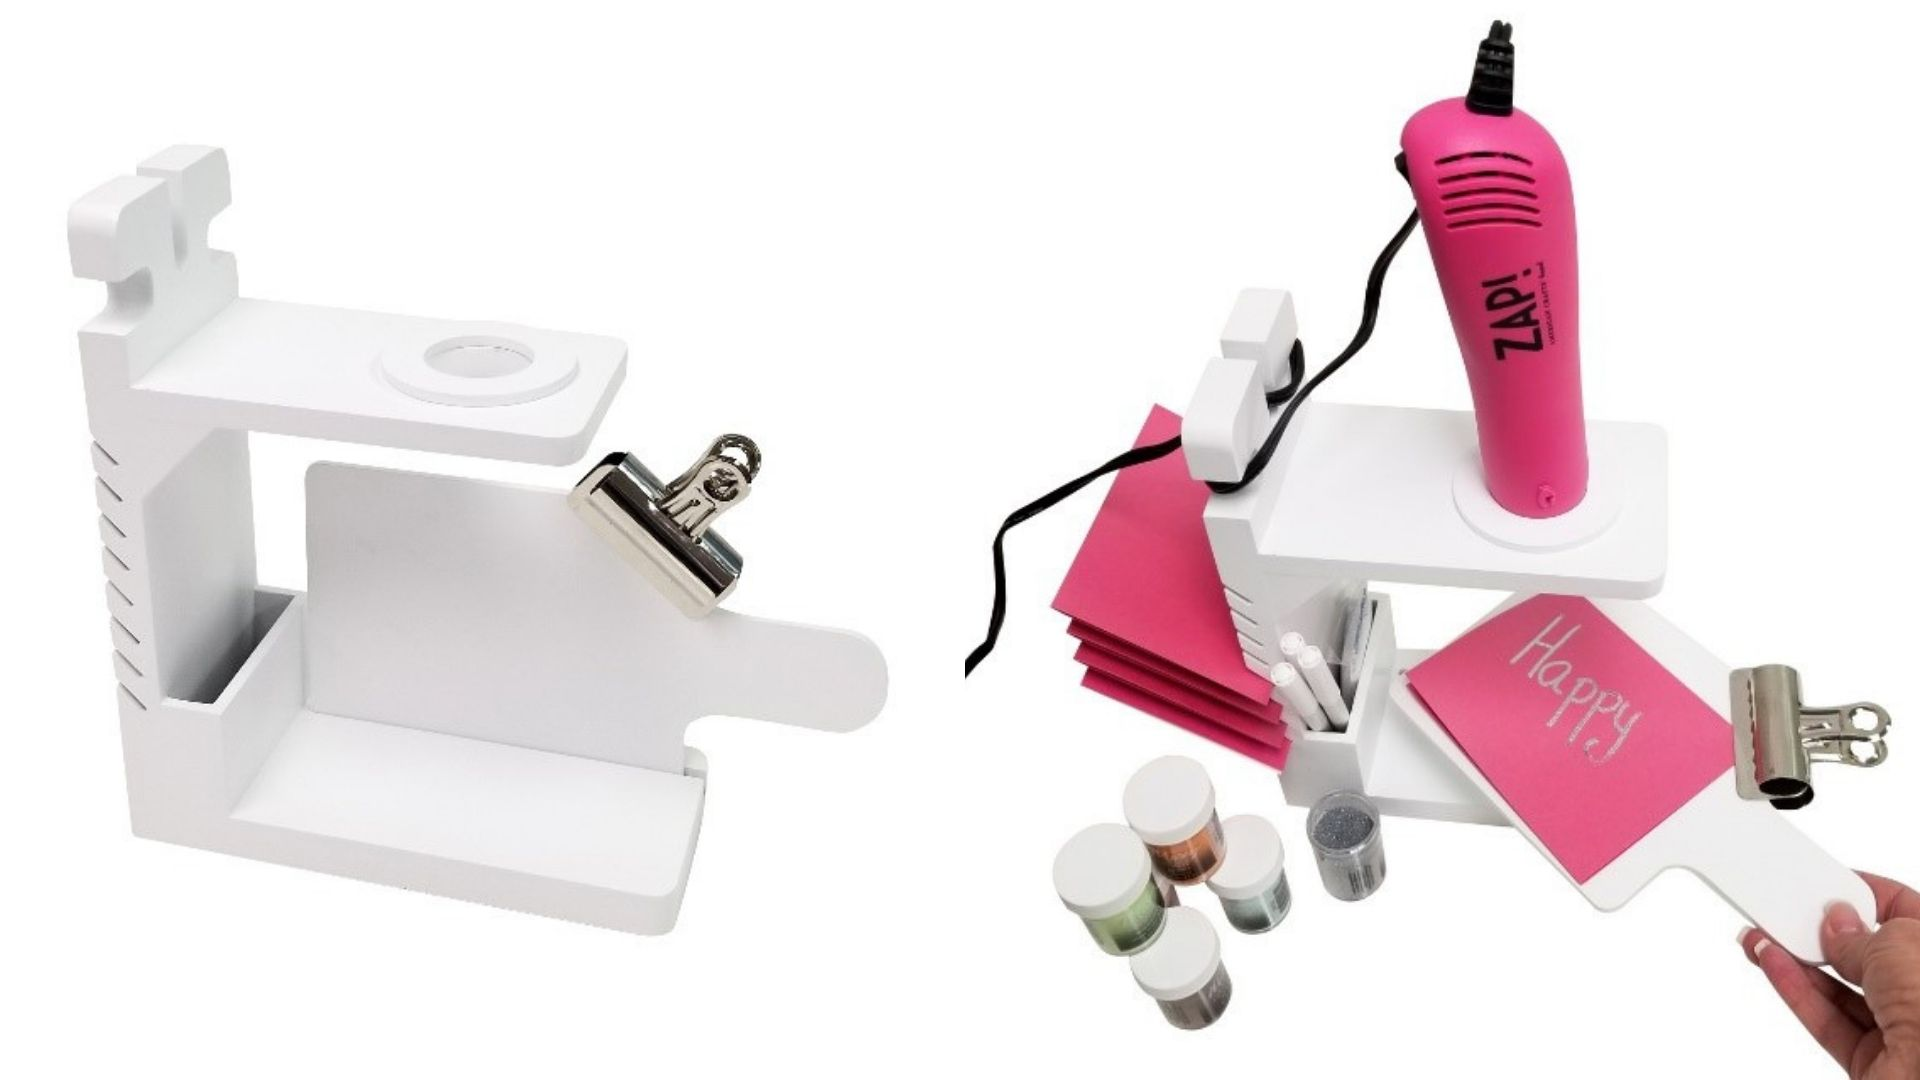 The Embossing Station - Storage Solutions - by Totally Tiffany. Organization system for your desk.